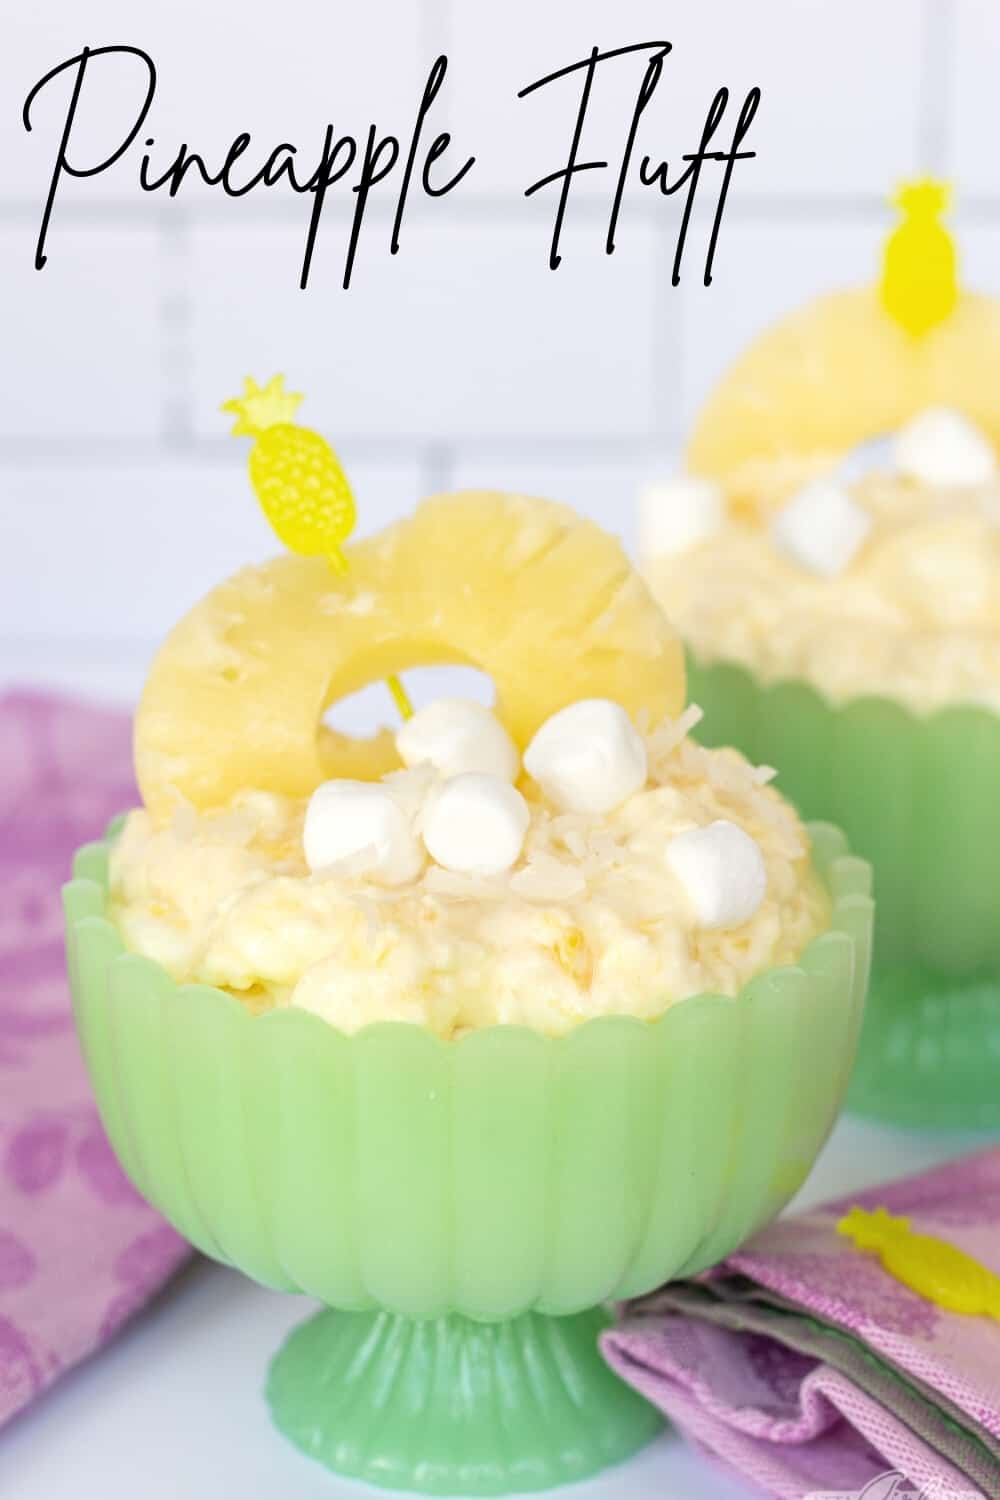 pineapple fluff garnished with marshmallows and pineapple ring in a green jadeite compote bowl